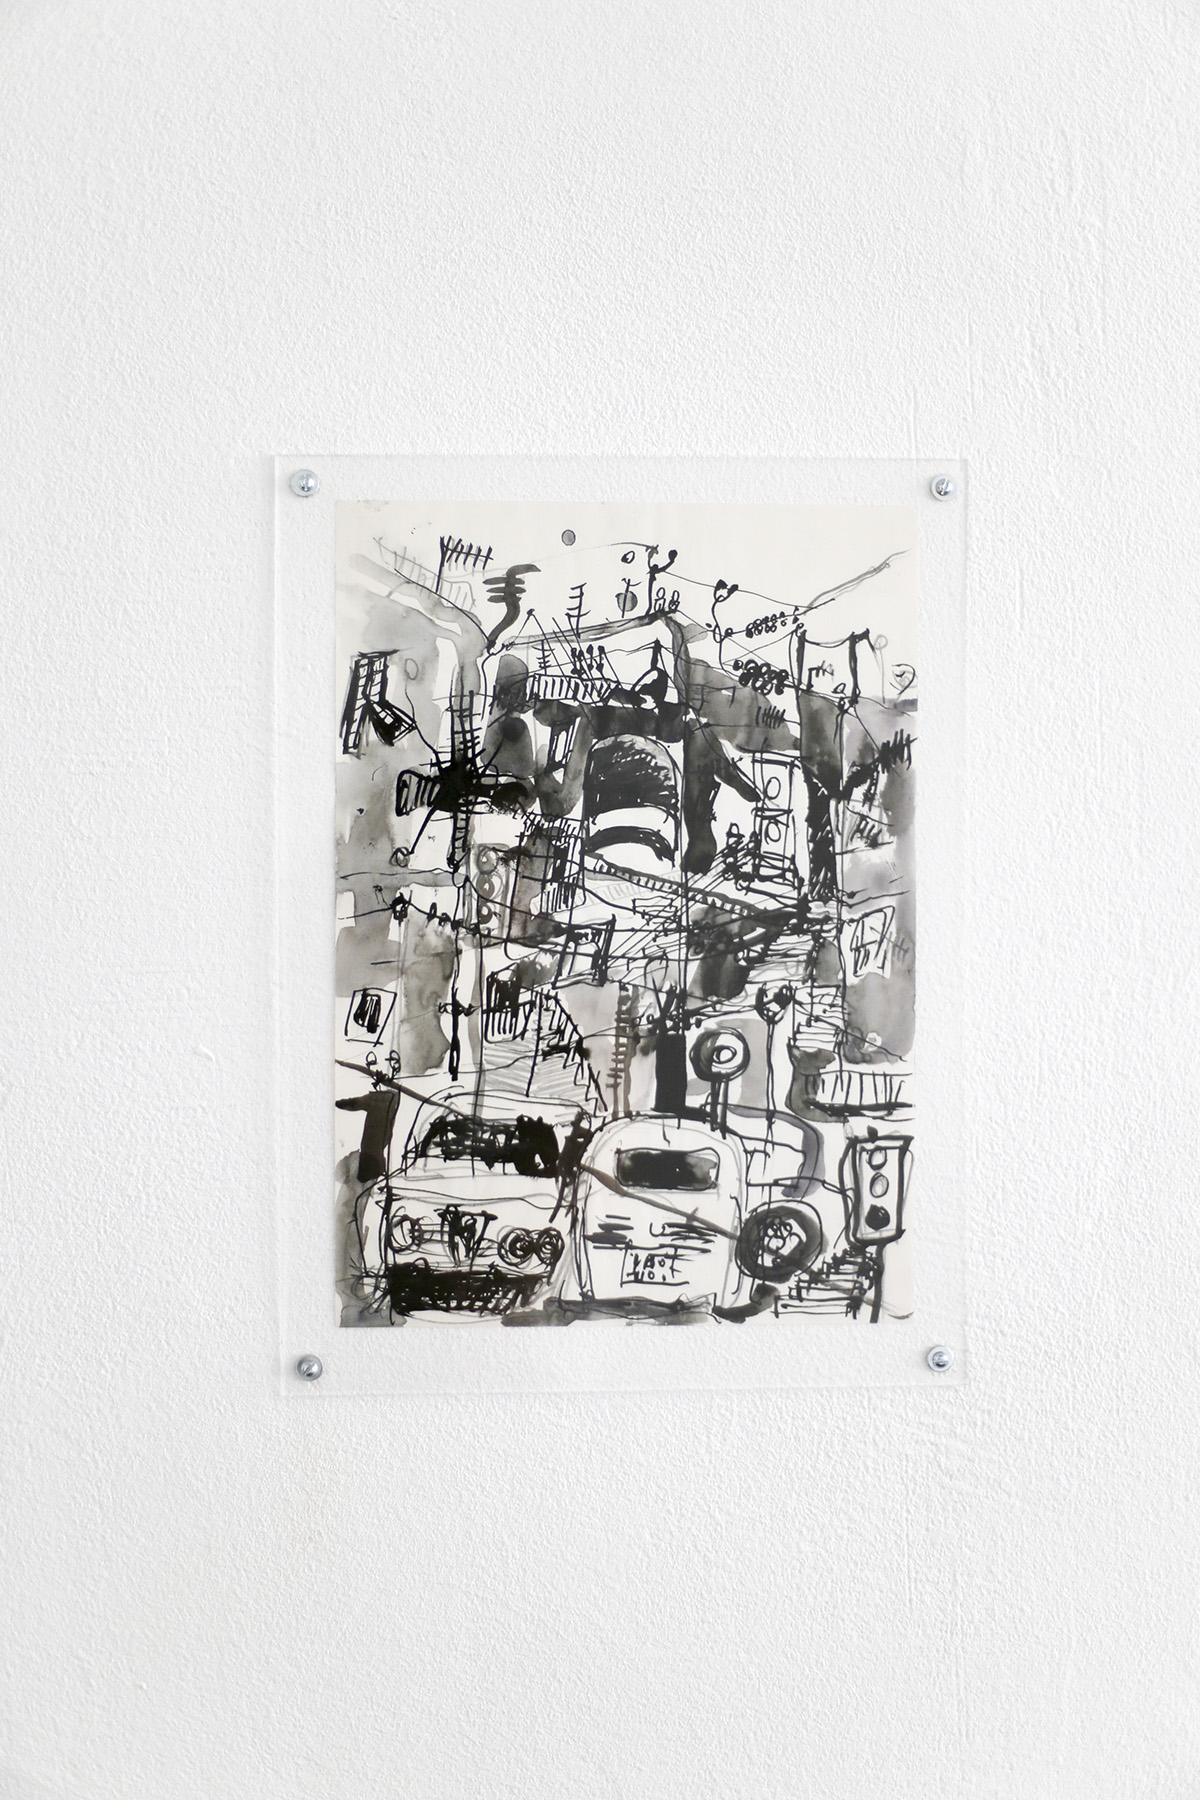 Significant-Other_2017_Dabernig_Vajd_Mendoza_Complexity-Contradiction-and-a-Decorated-Shed-14